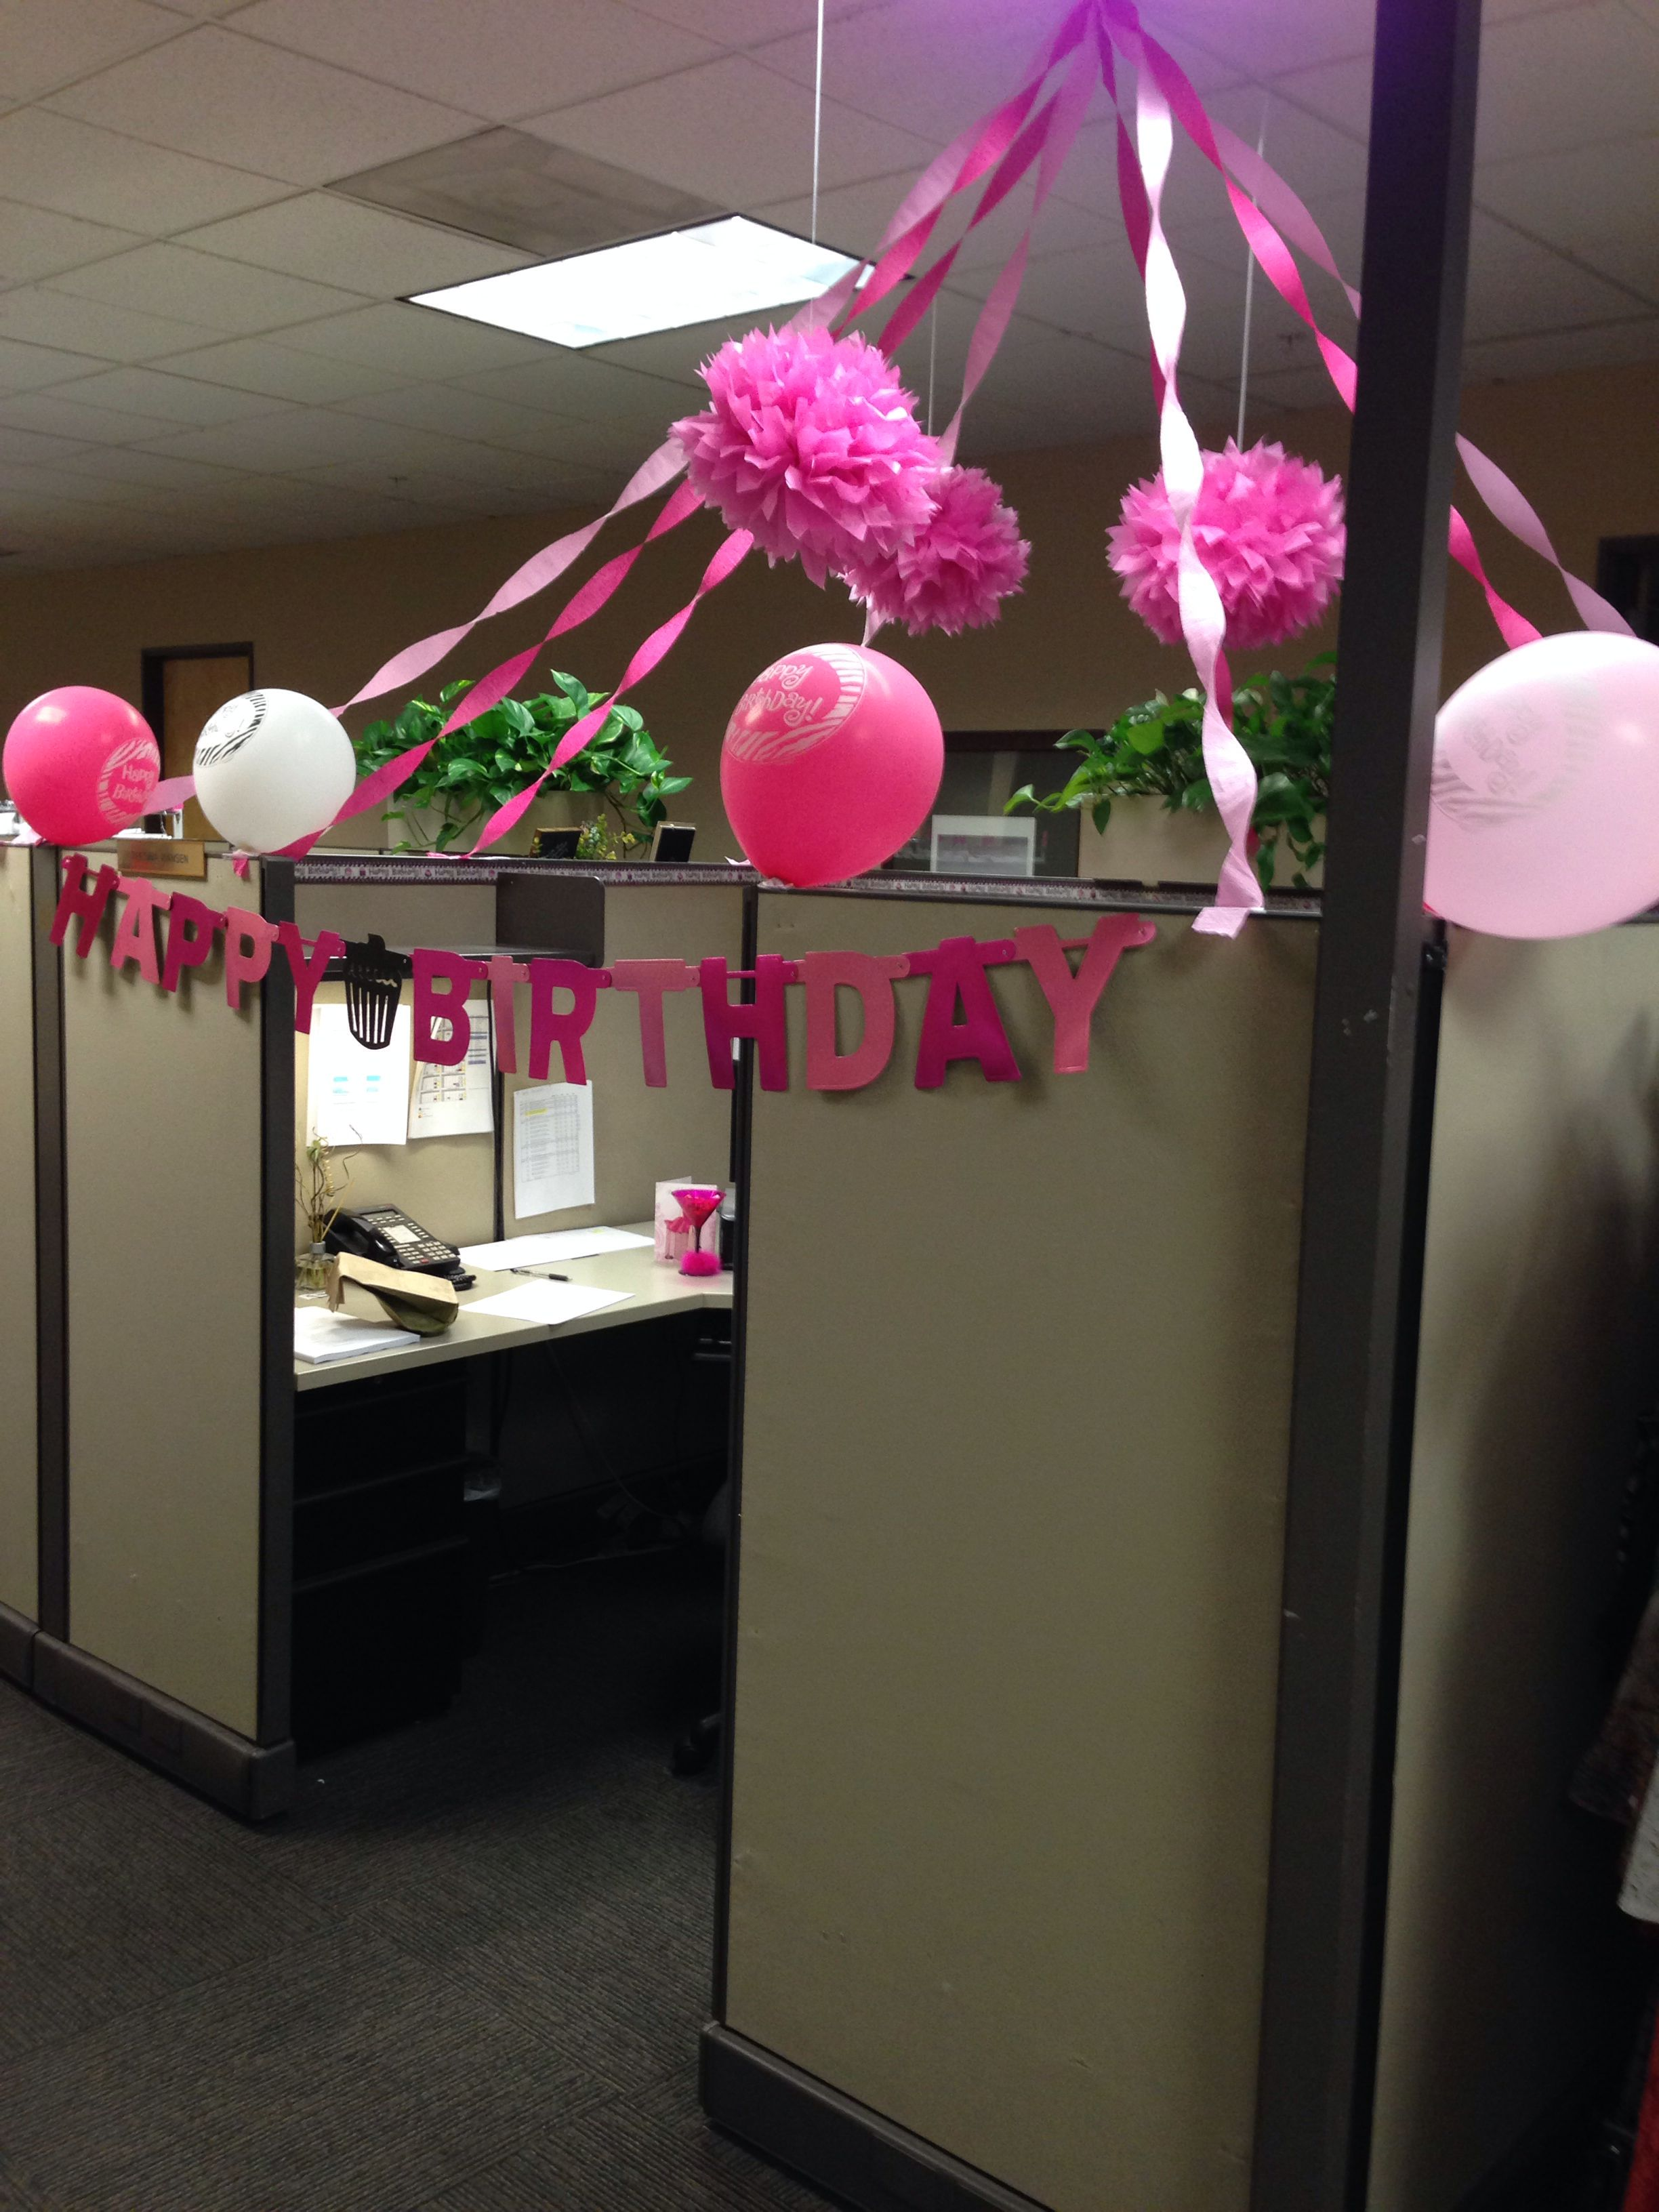 My Birthday Cubicle Office Birthday Decorations Cubicle